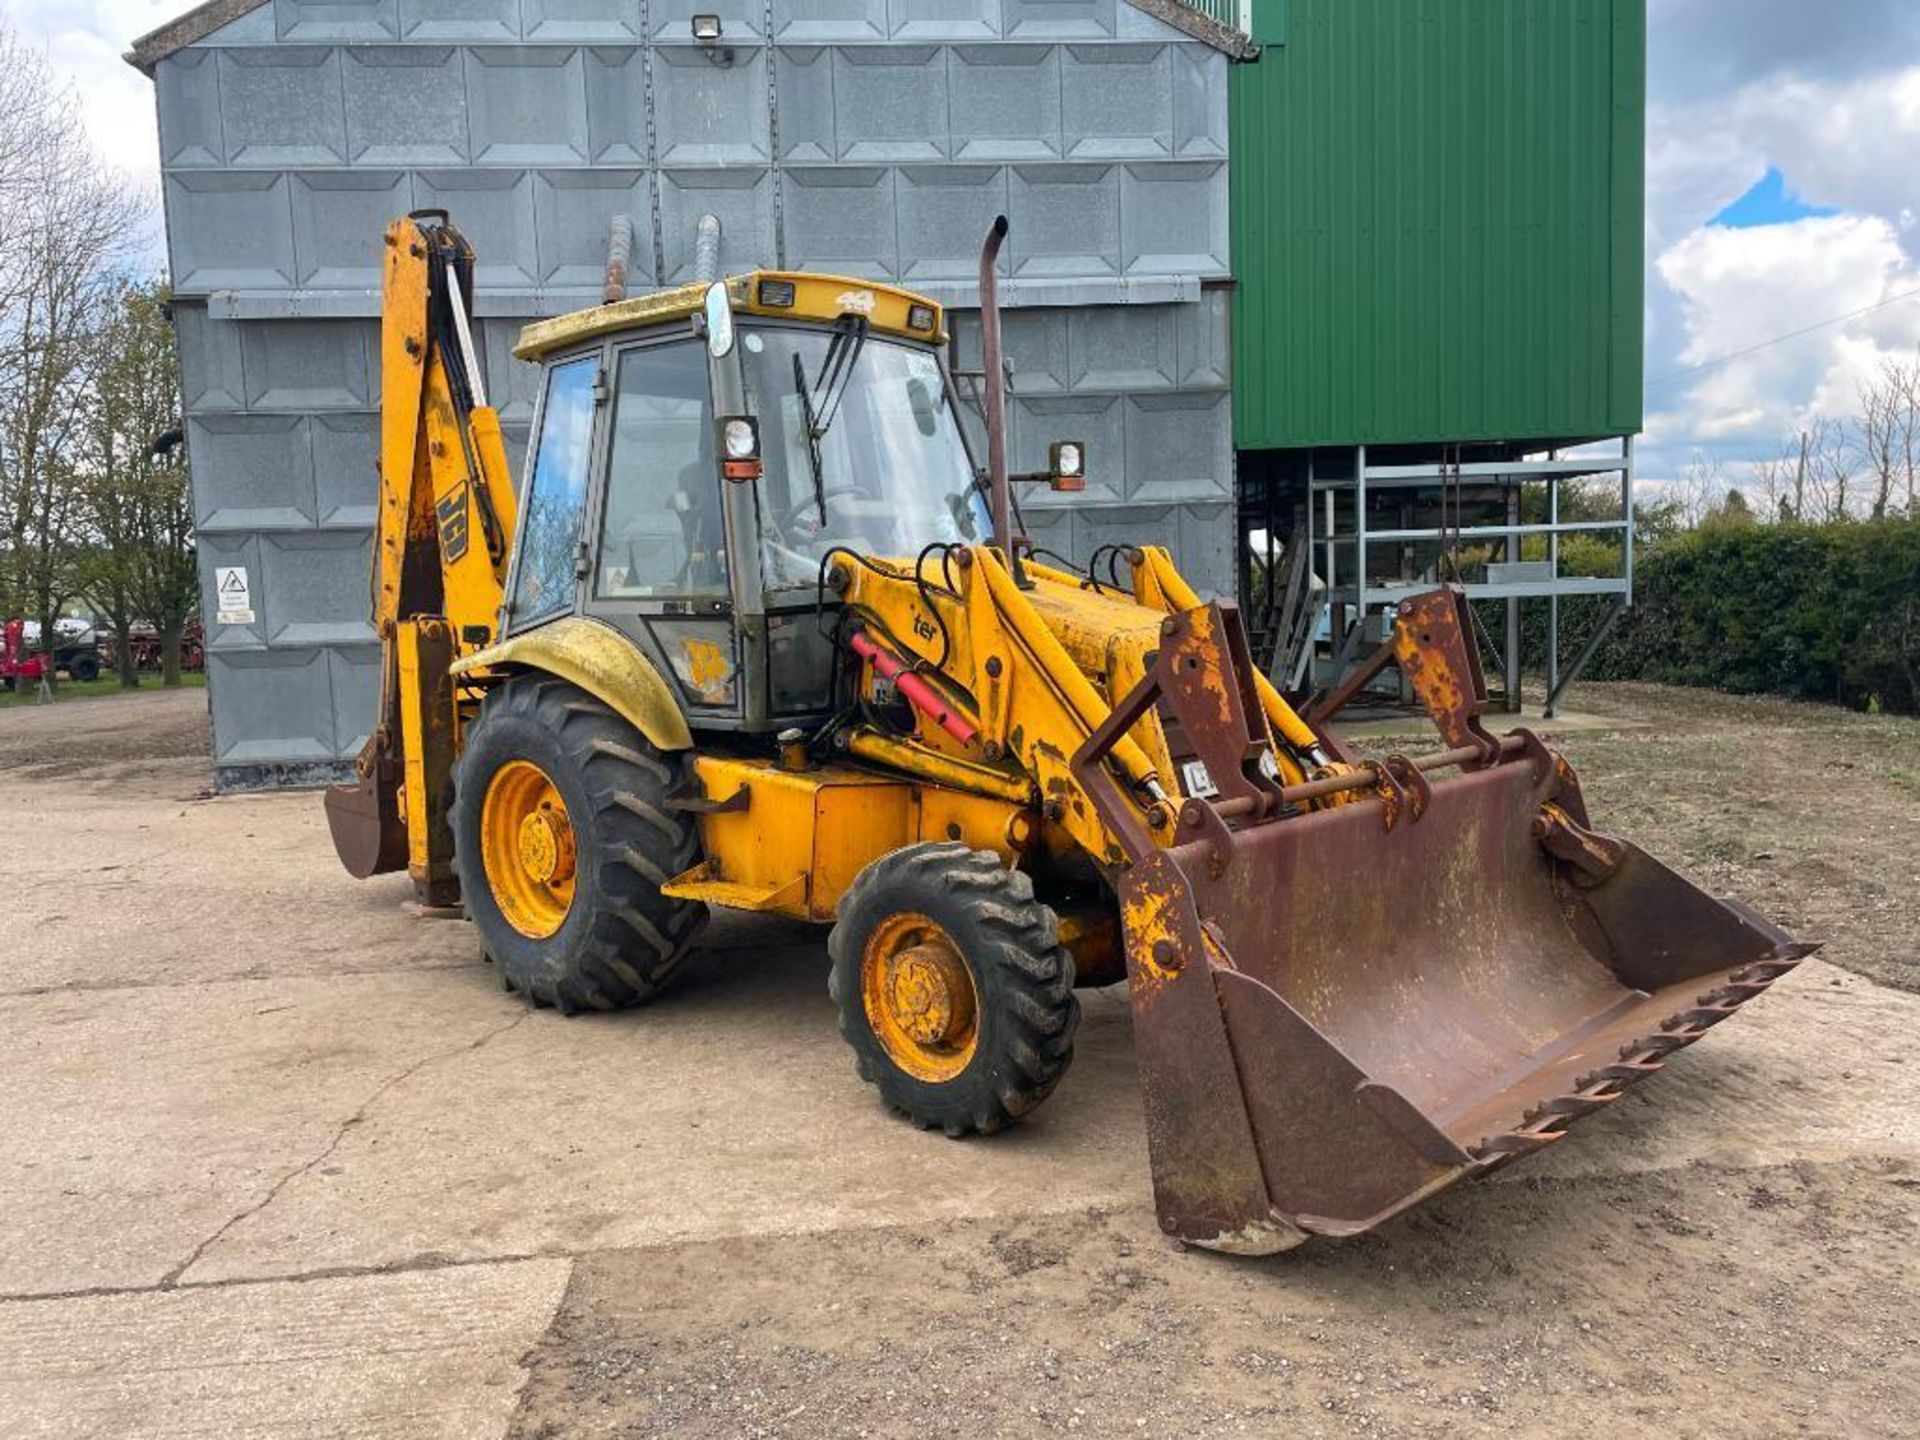 1993 JCB 3CX Sitemaster 4wd back hoe loader with 3 in 1 bucket on 10.5/80-18 front and 18.4-26 rear - Image 8 of 14